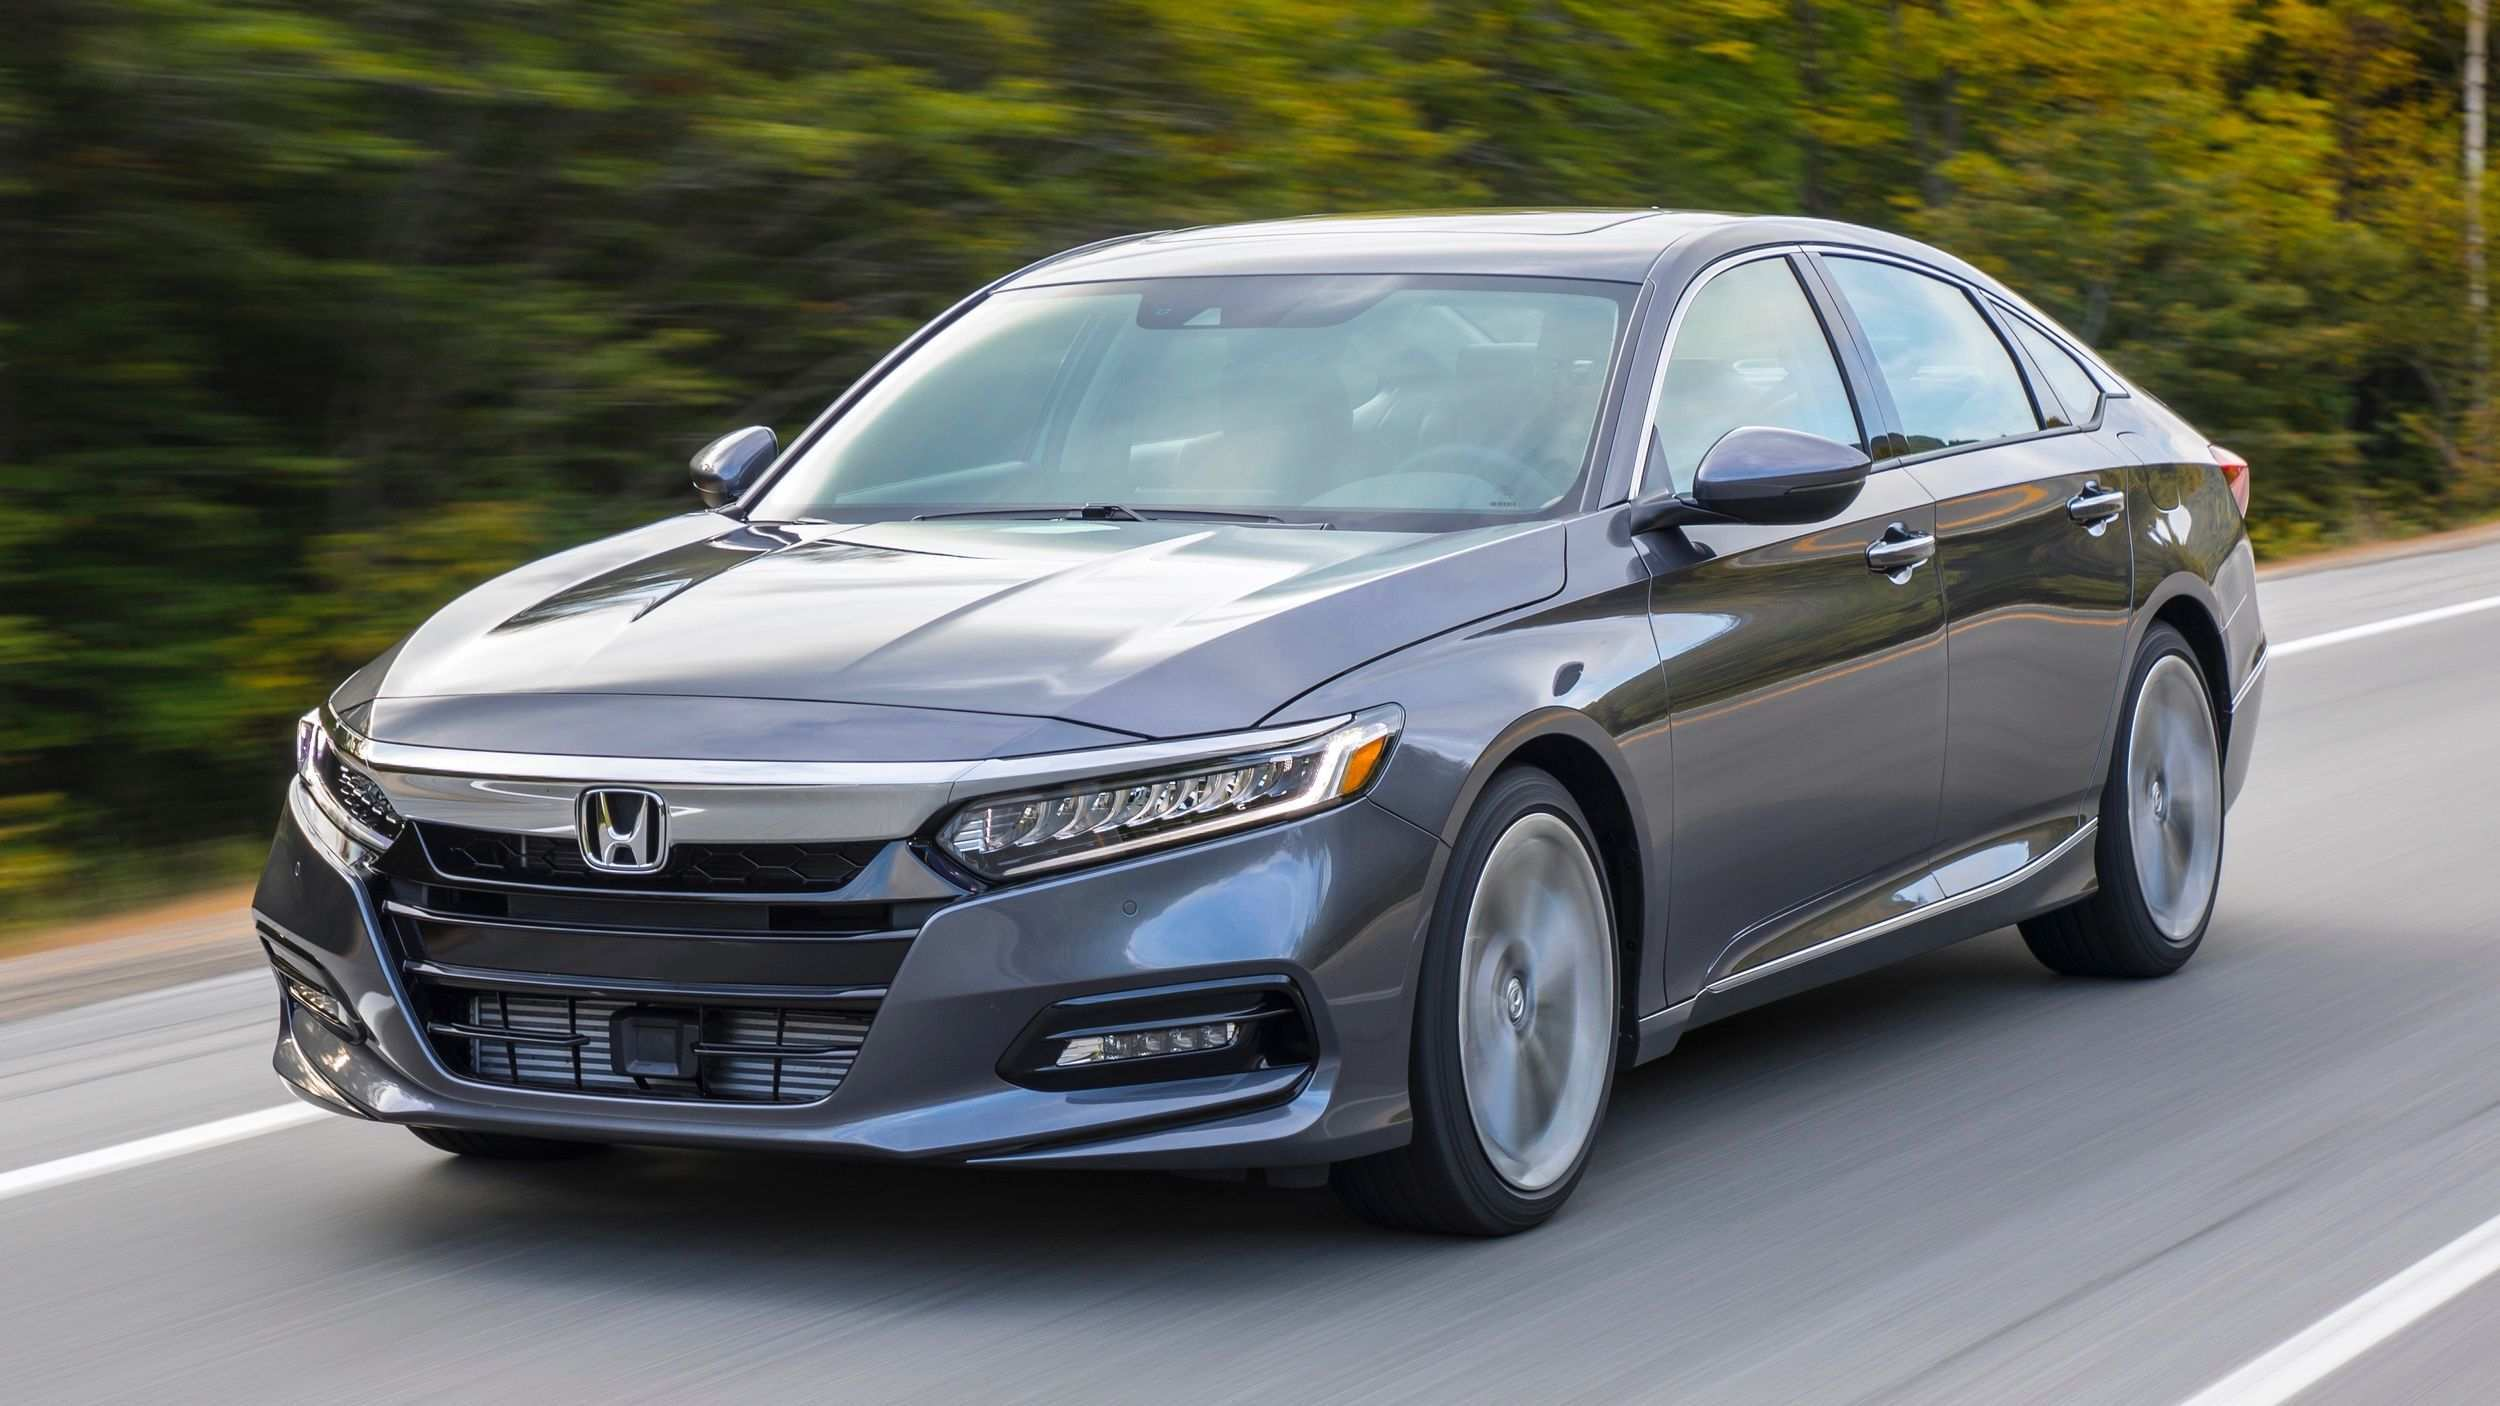 89 All New 2020 Honda Accord Sedan Model